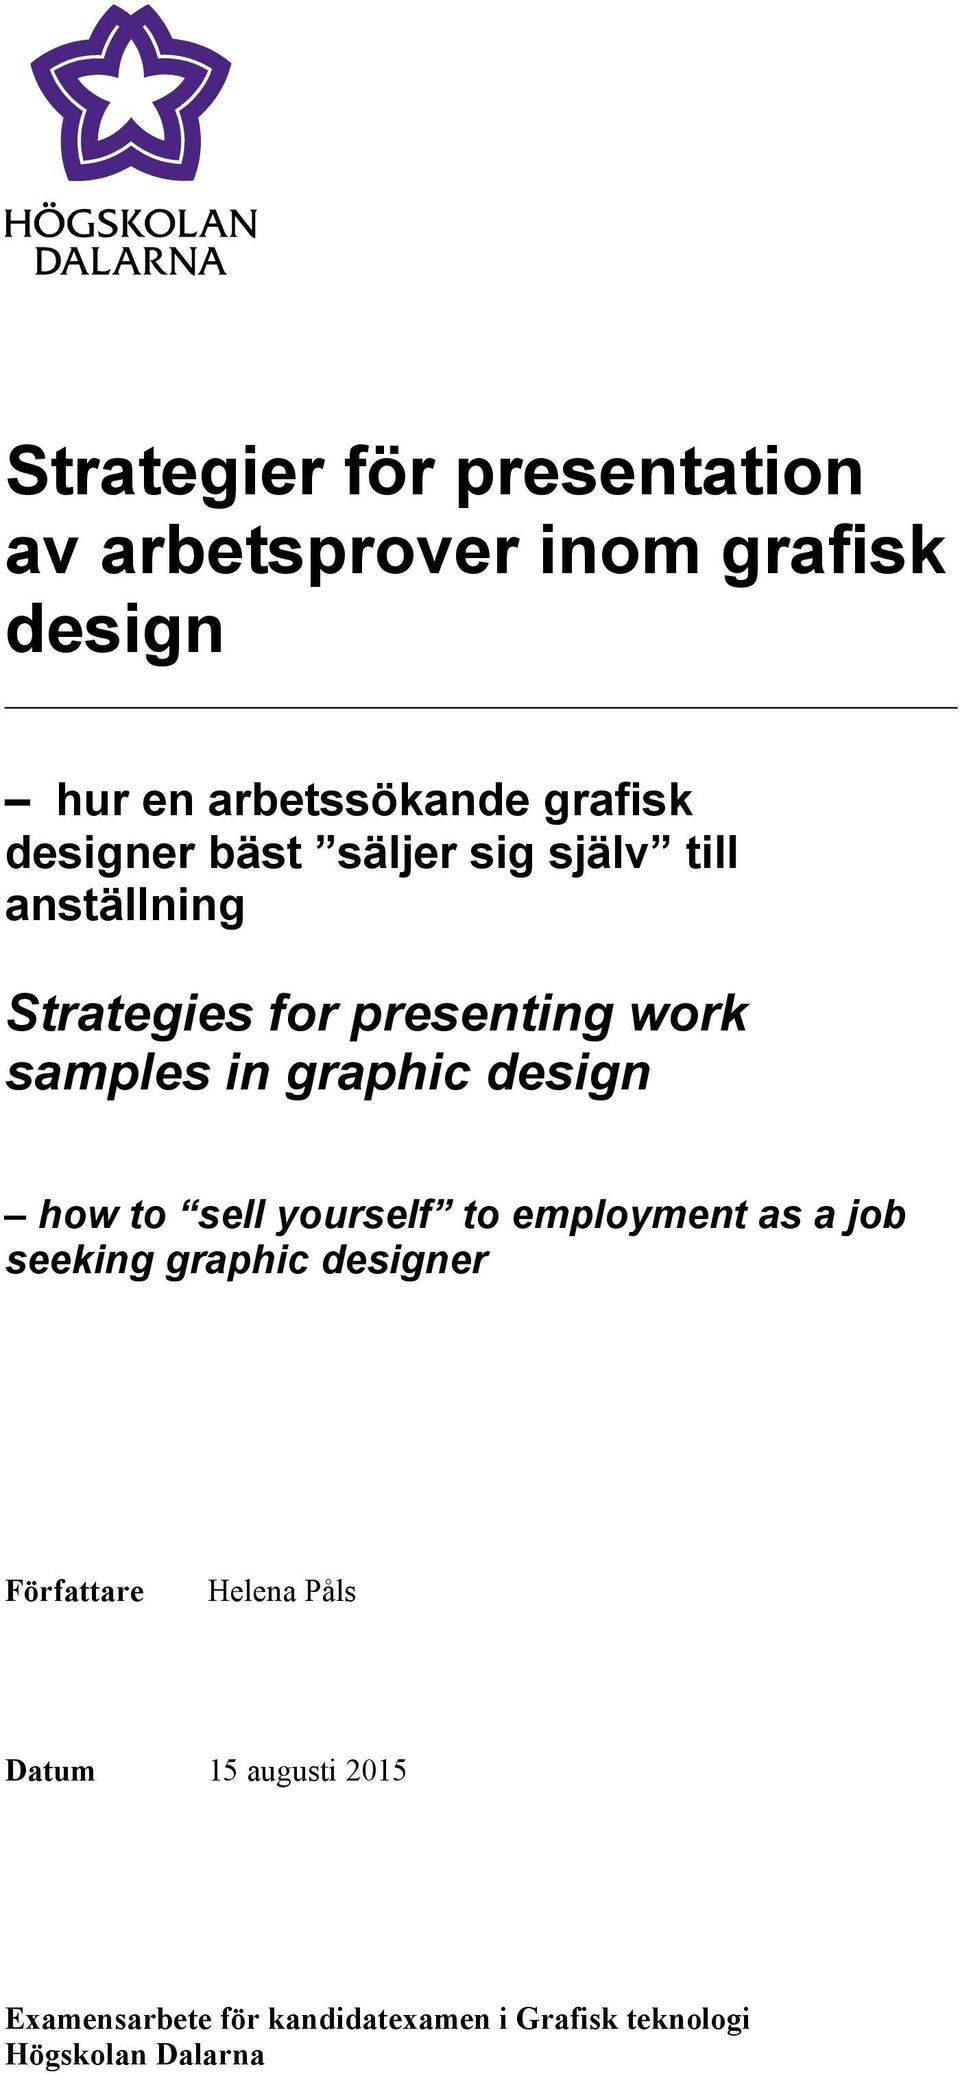 graphic design how to sell yourself to employment as a job seeking graphic designer Författare